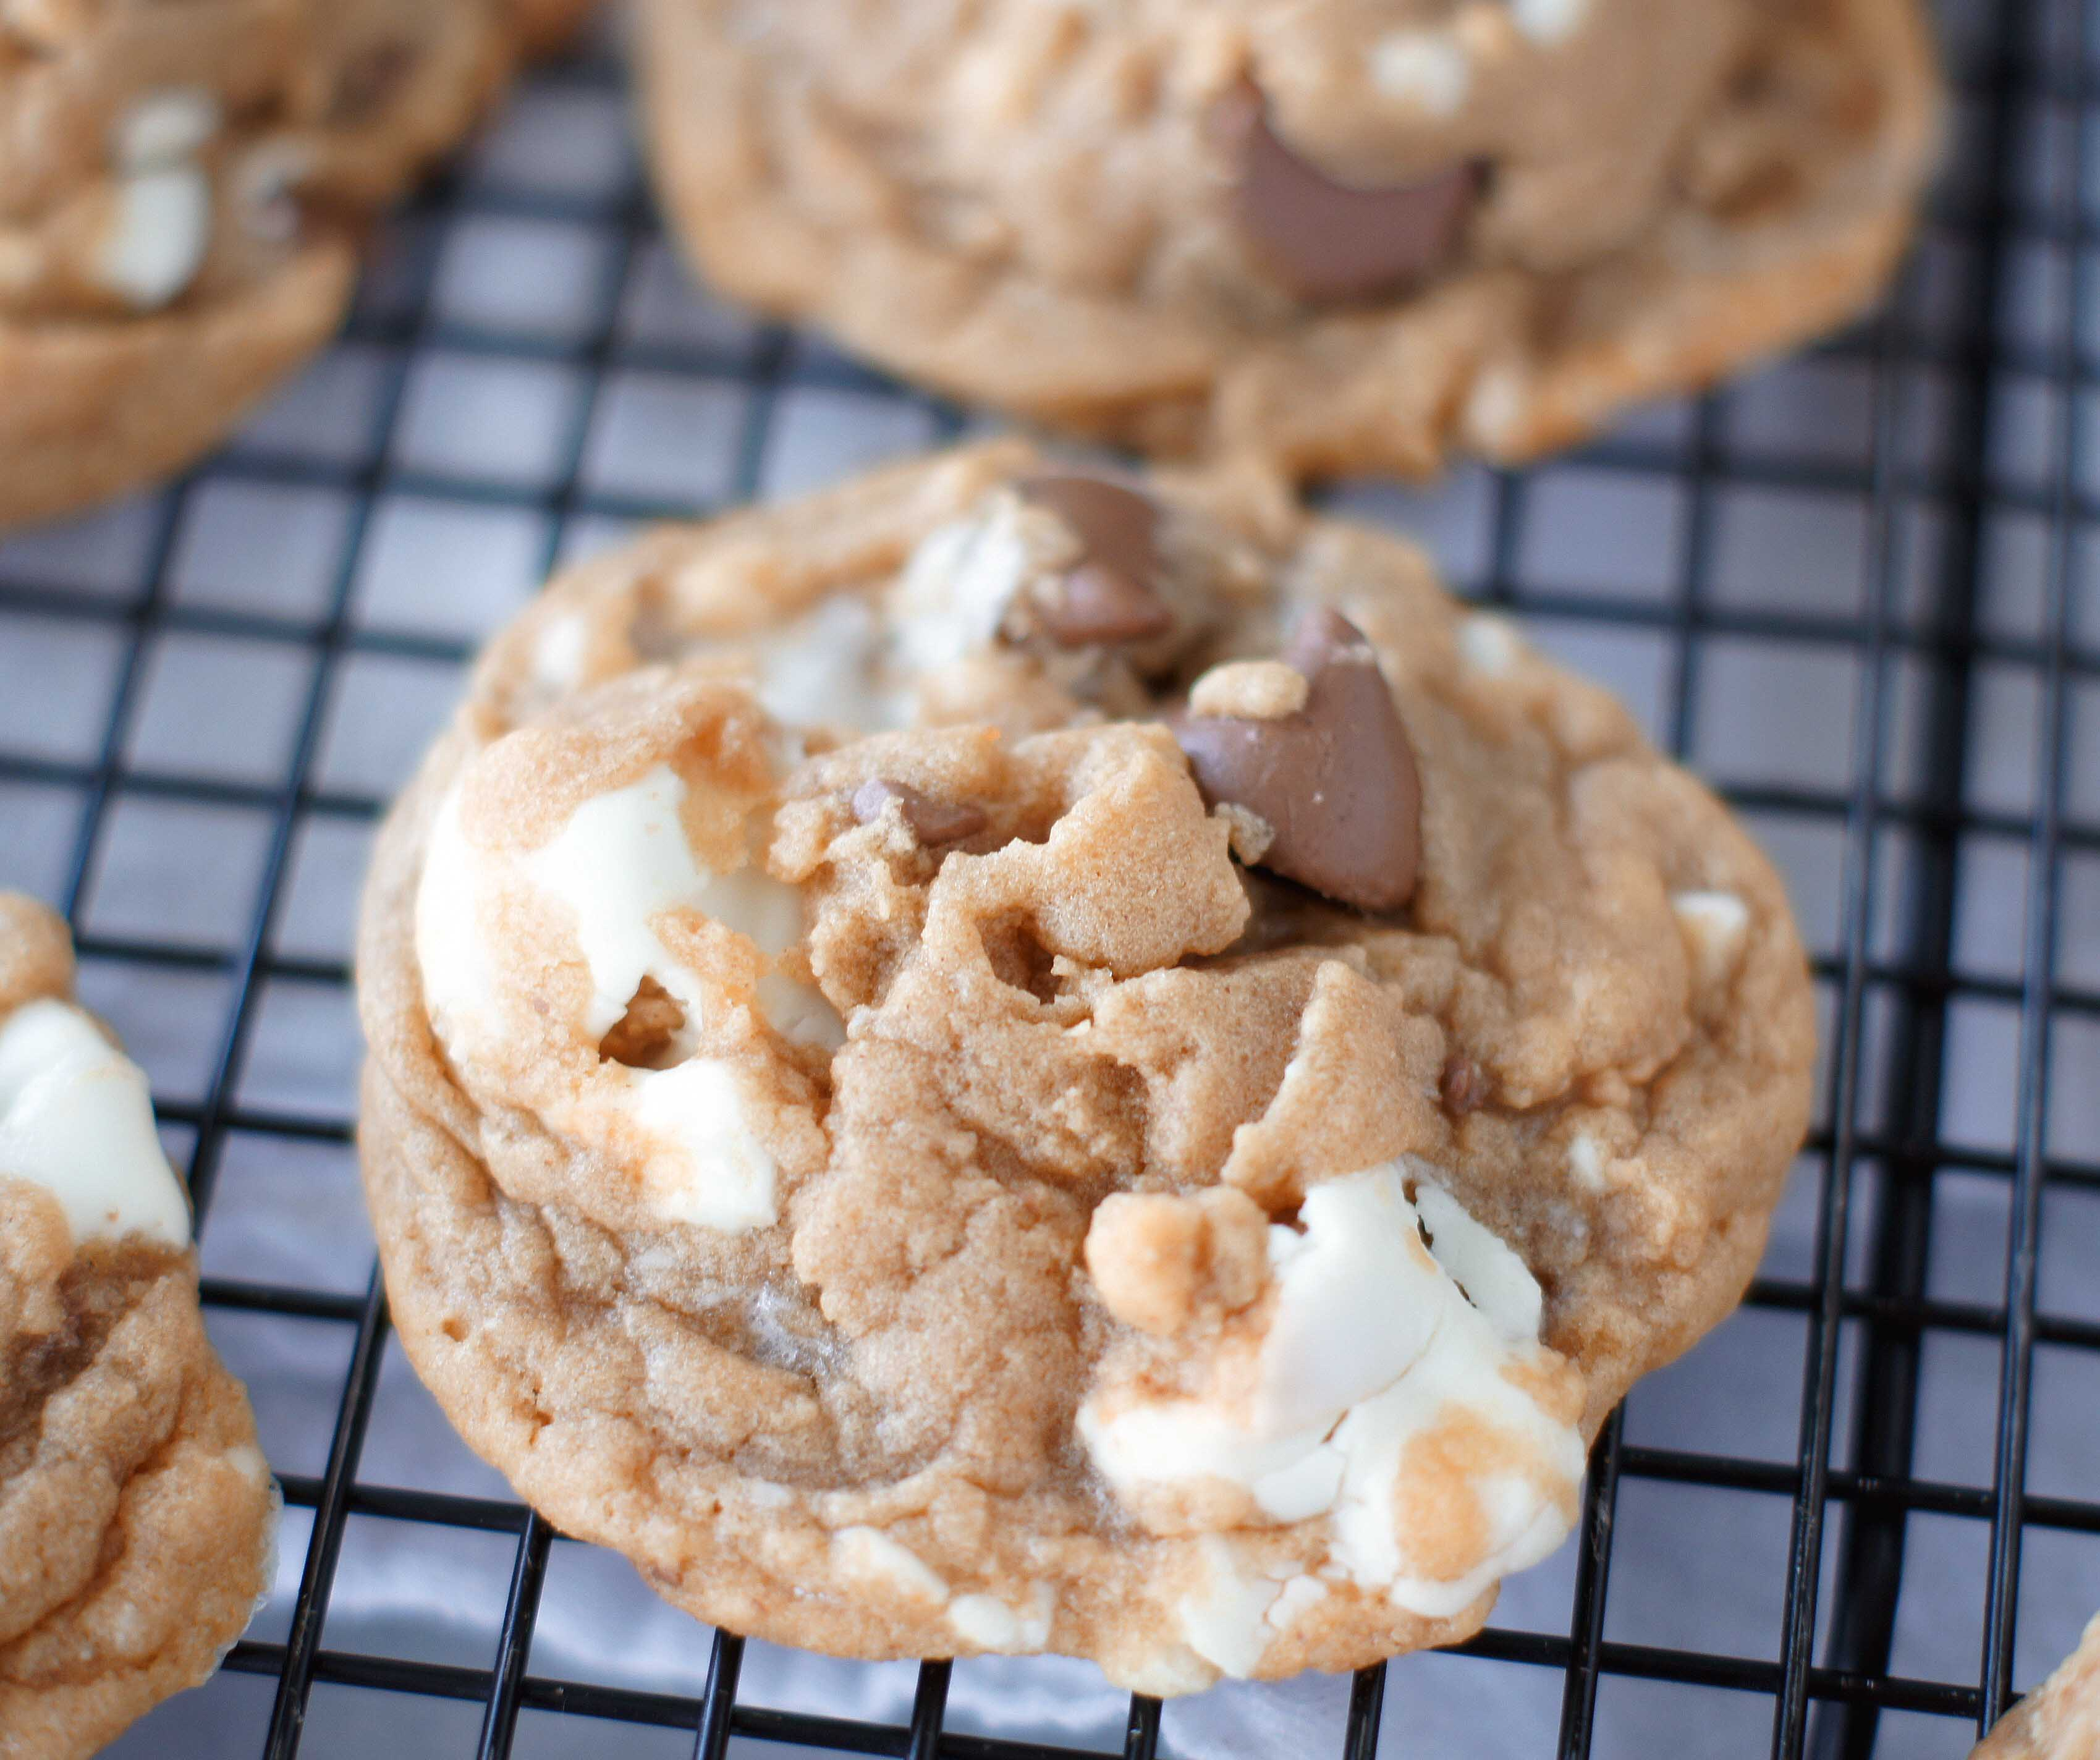 Reese's Marshmallow Peanut Butter Chip Cookies - 5 Boys Baker